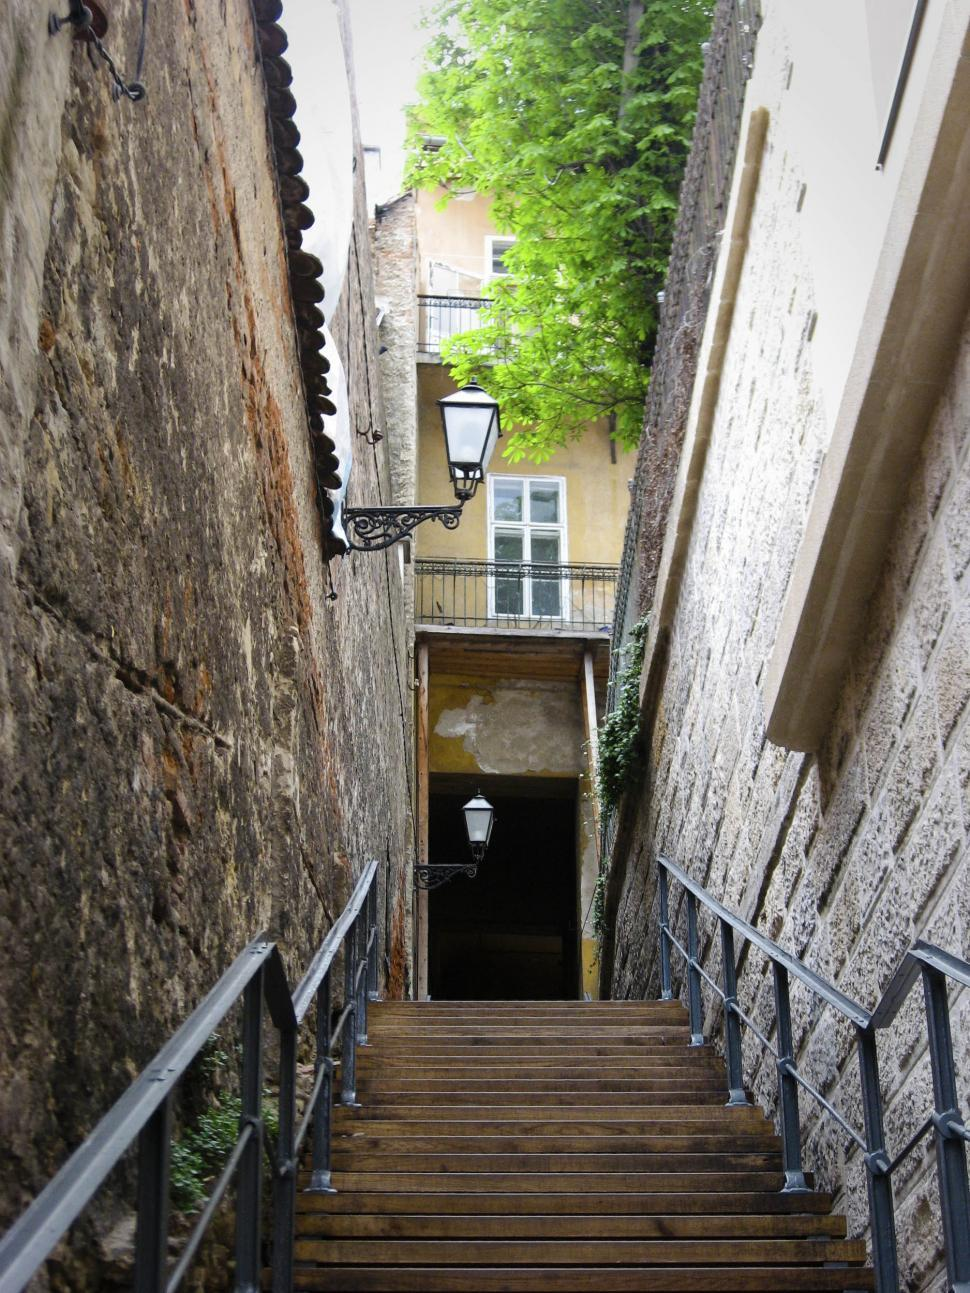 Download Free Stock HD Photo of old narrow street Online